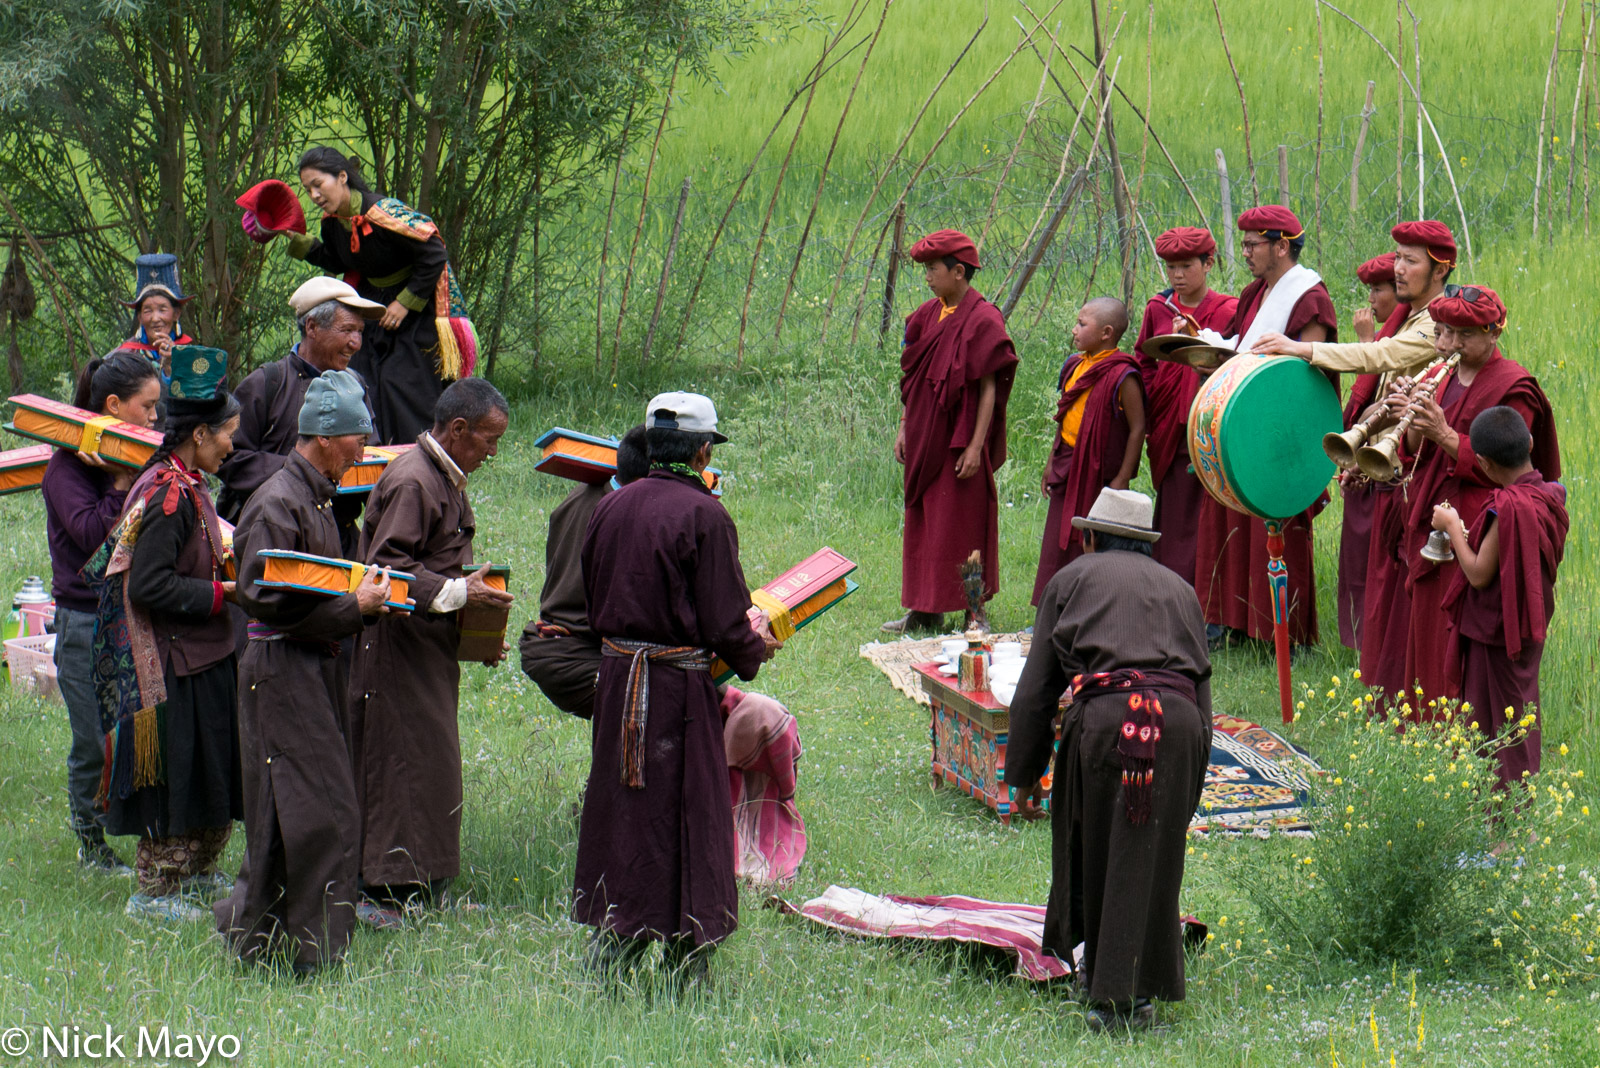 A religious ritual to bless the crops overseen by monks with a drum, cymbals, horns and a bell at Miru village.